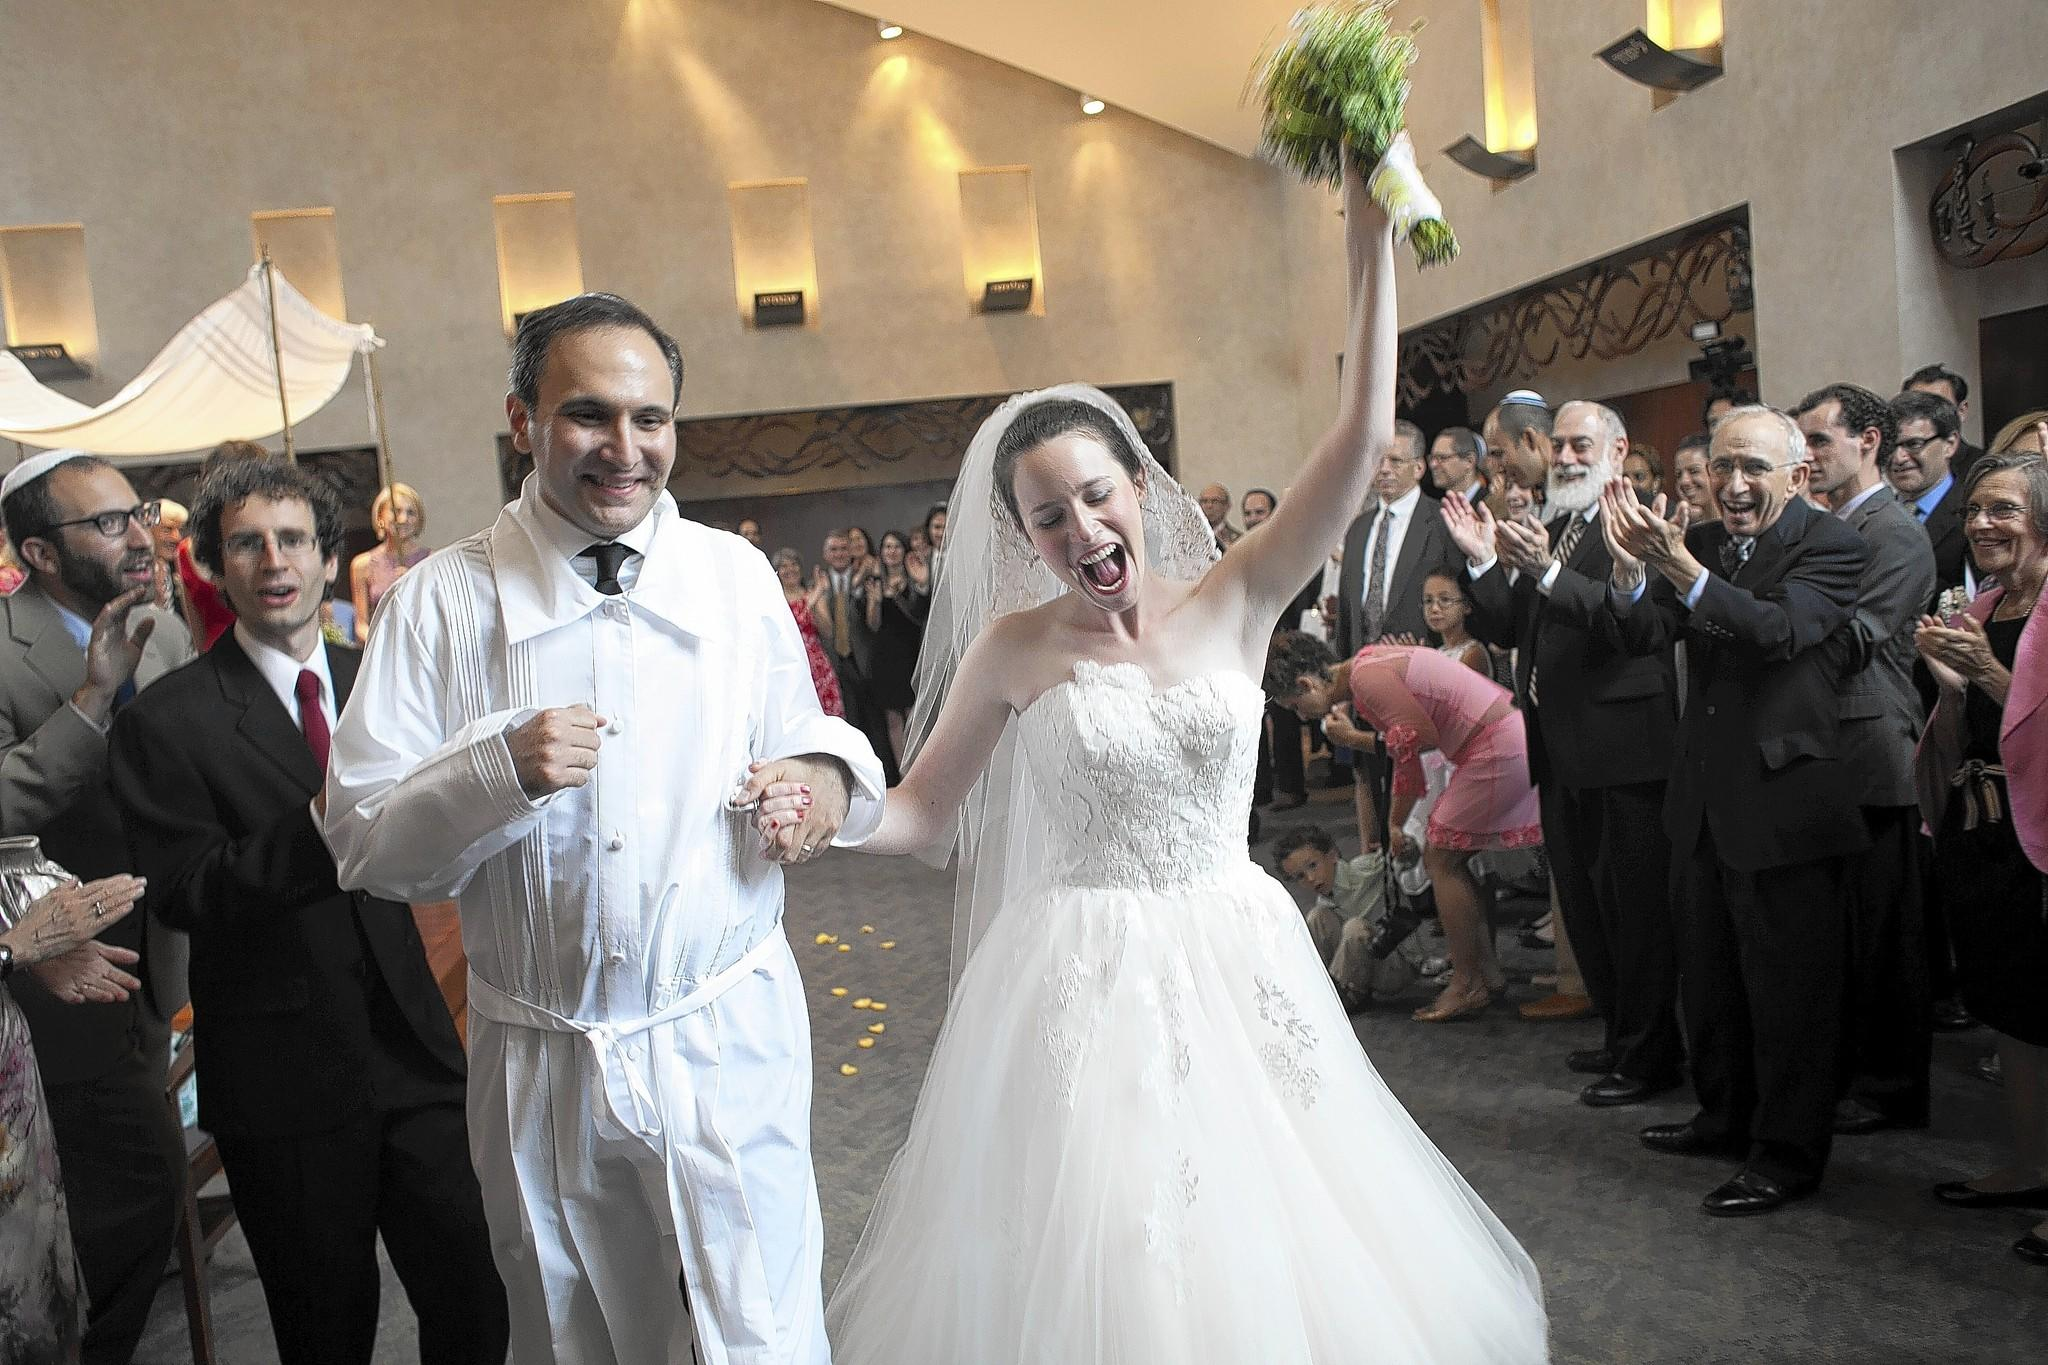 Ben Bregman and Jessica Agus were married in July 2013 at Beth El Congregation in Baltimore.